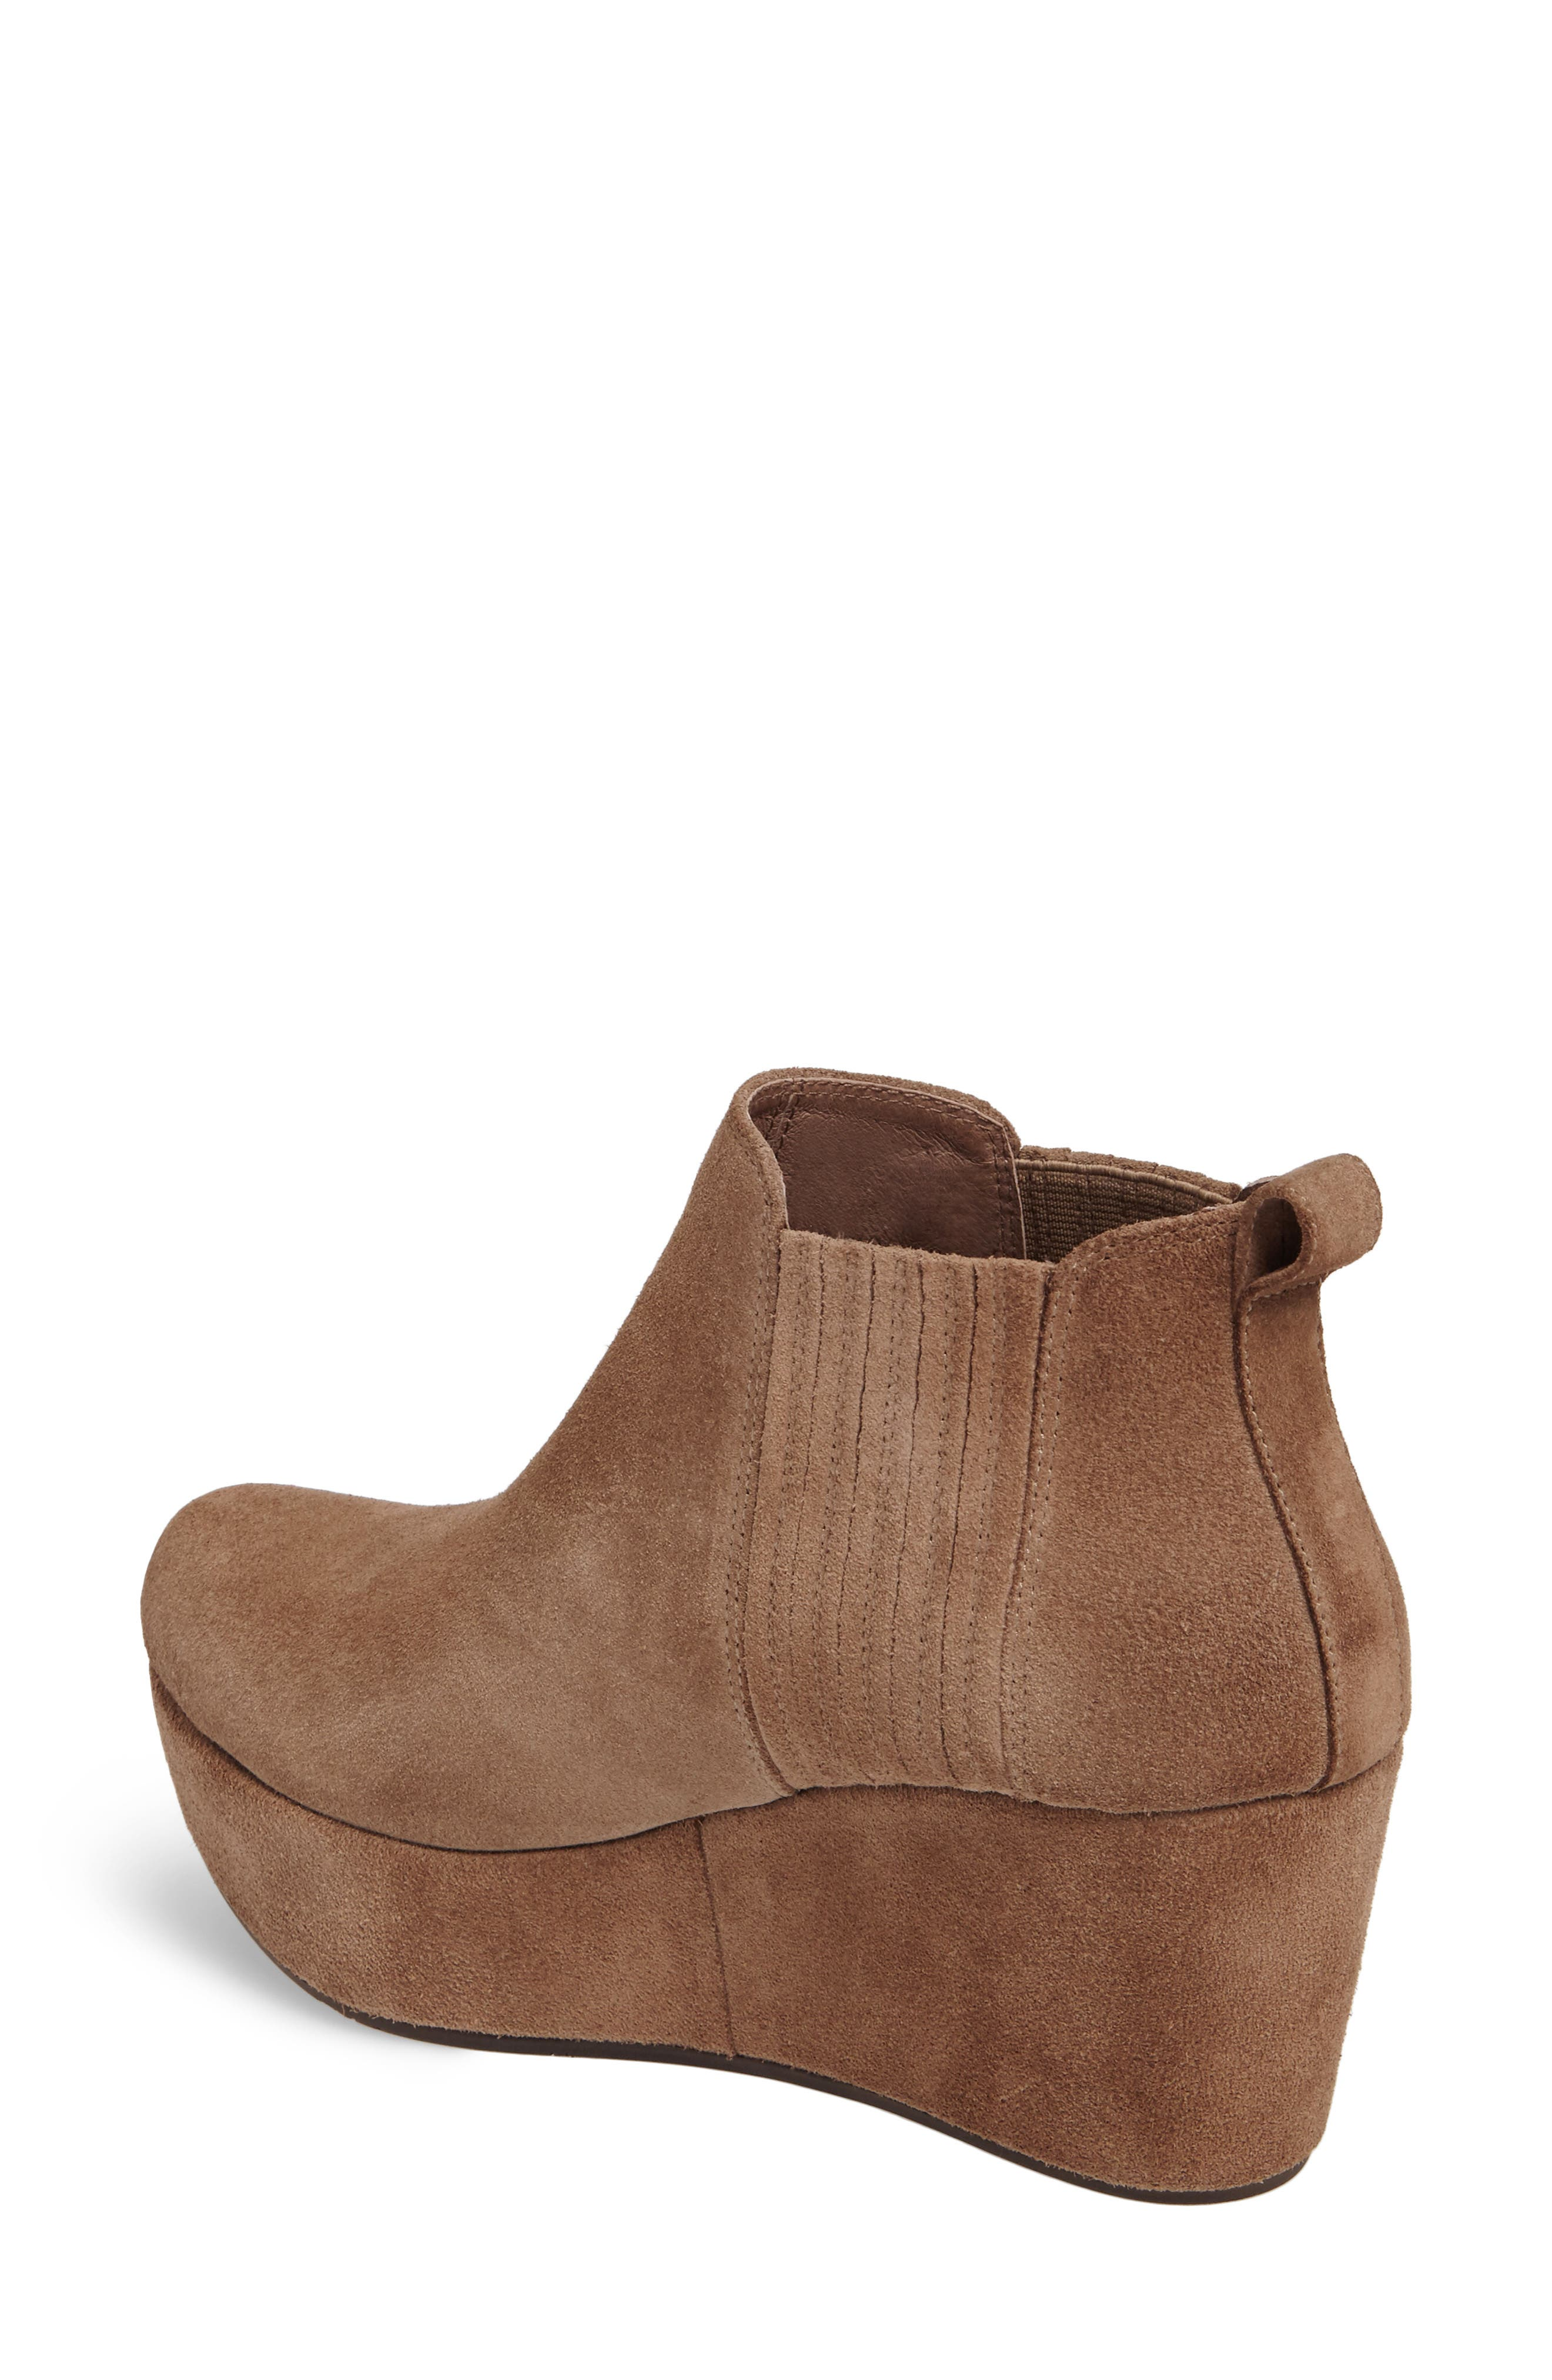 Walden Wedge Bootie,                             Alternate thumbnail 2, color,                             Taupe Suede